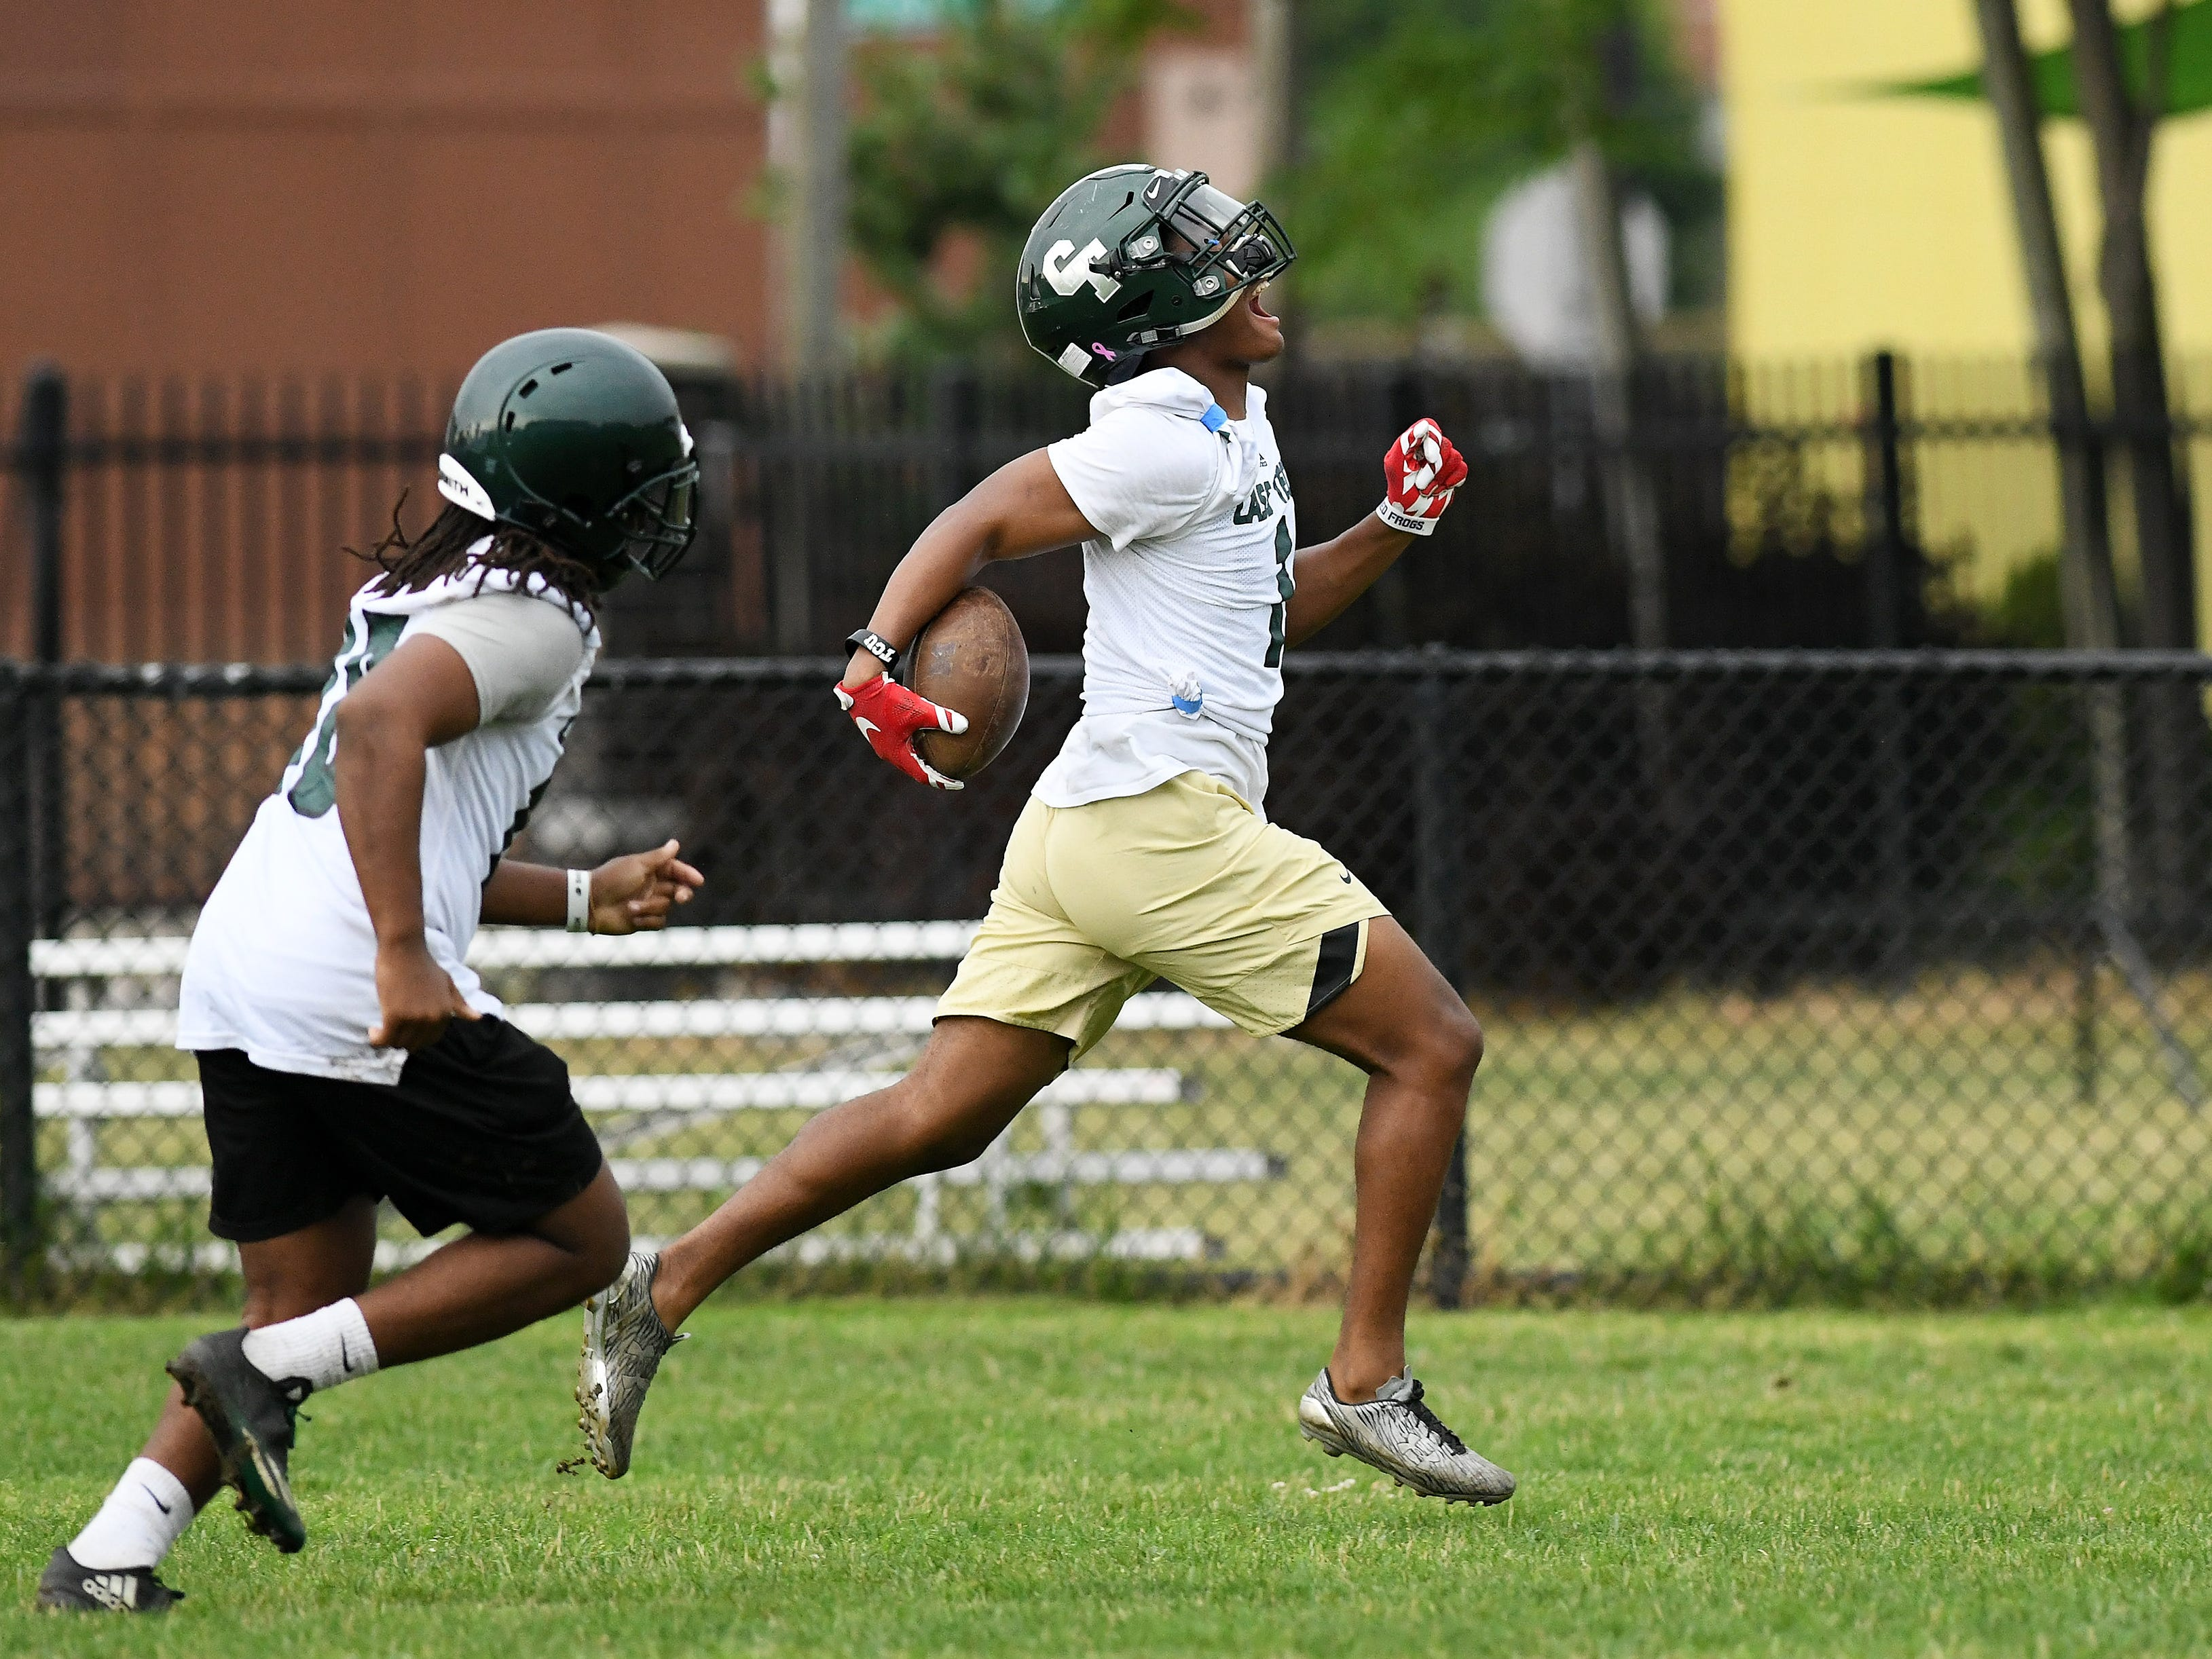 Running back Jaren Mangham runs back a kick during special teams drills at football practice at Cass Technical High School in Detroit on Aug. 6, 2018.